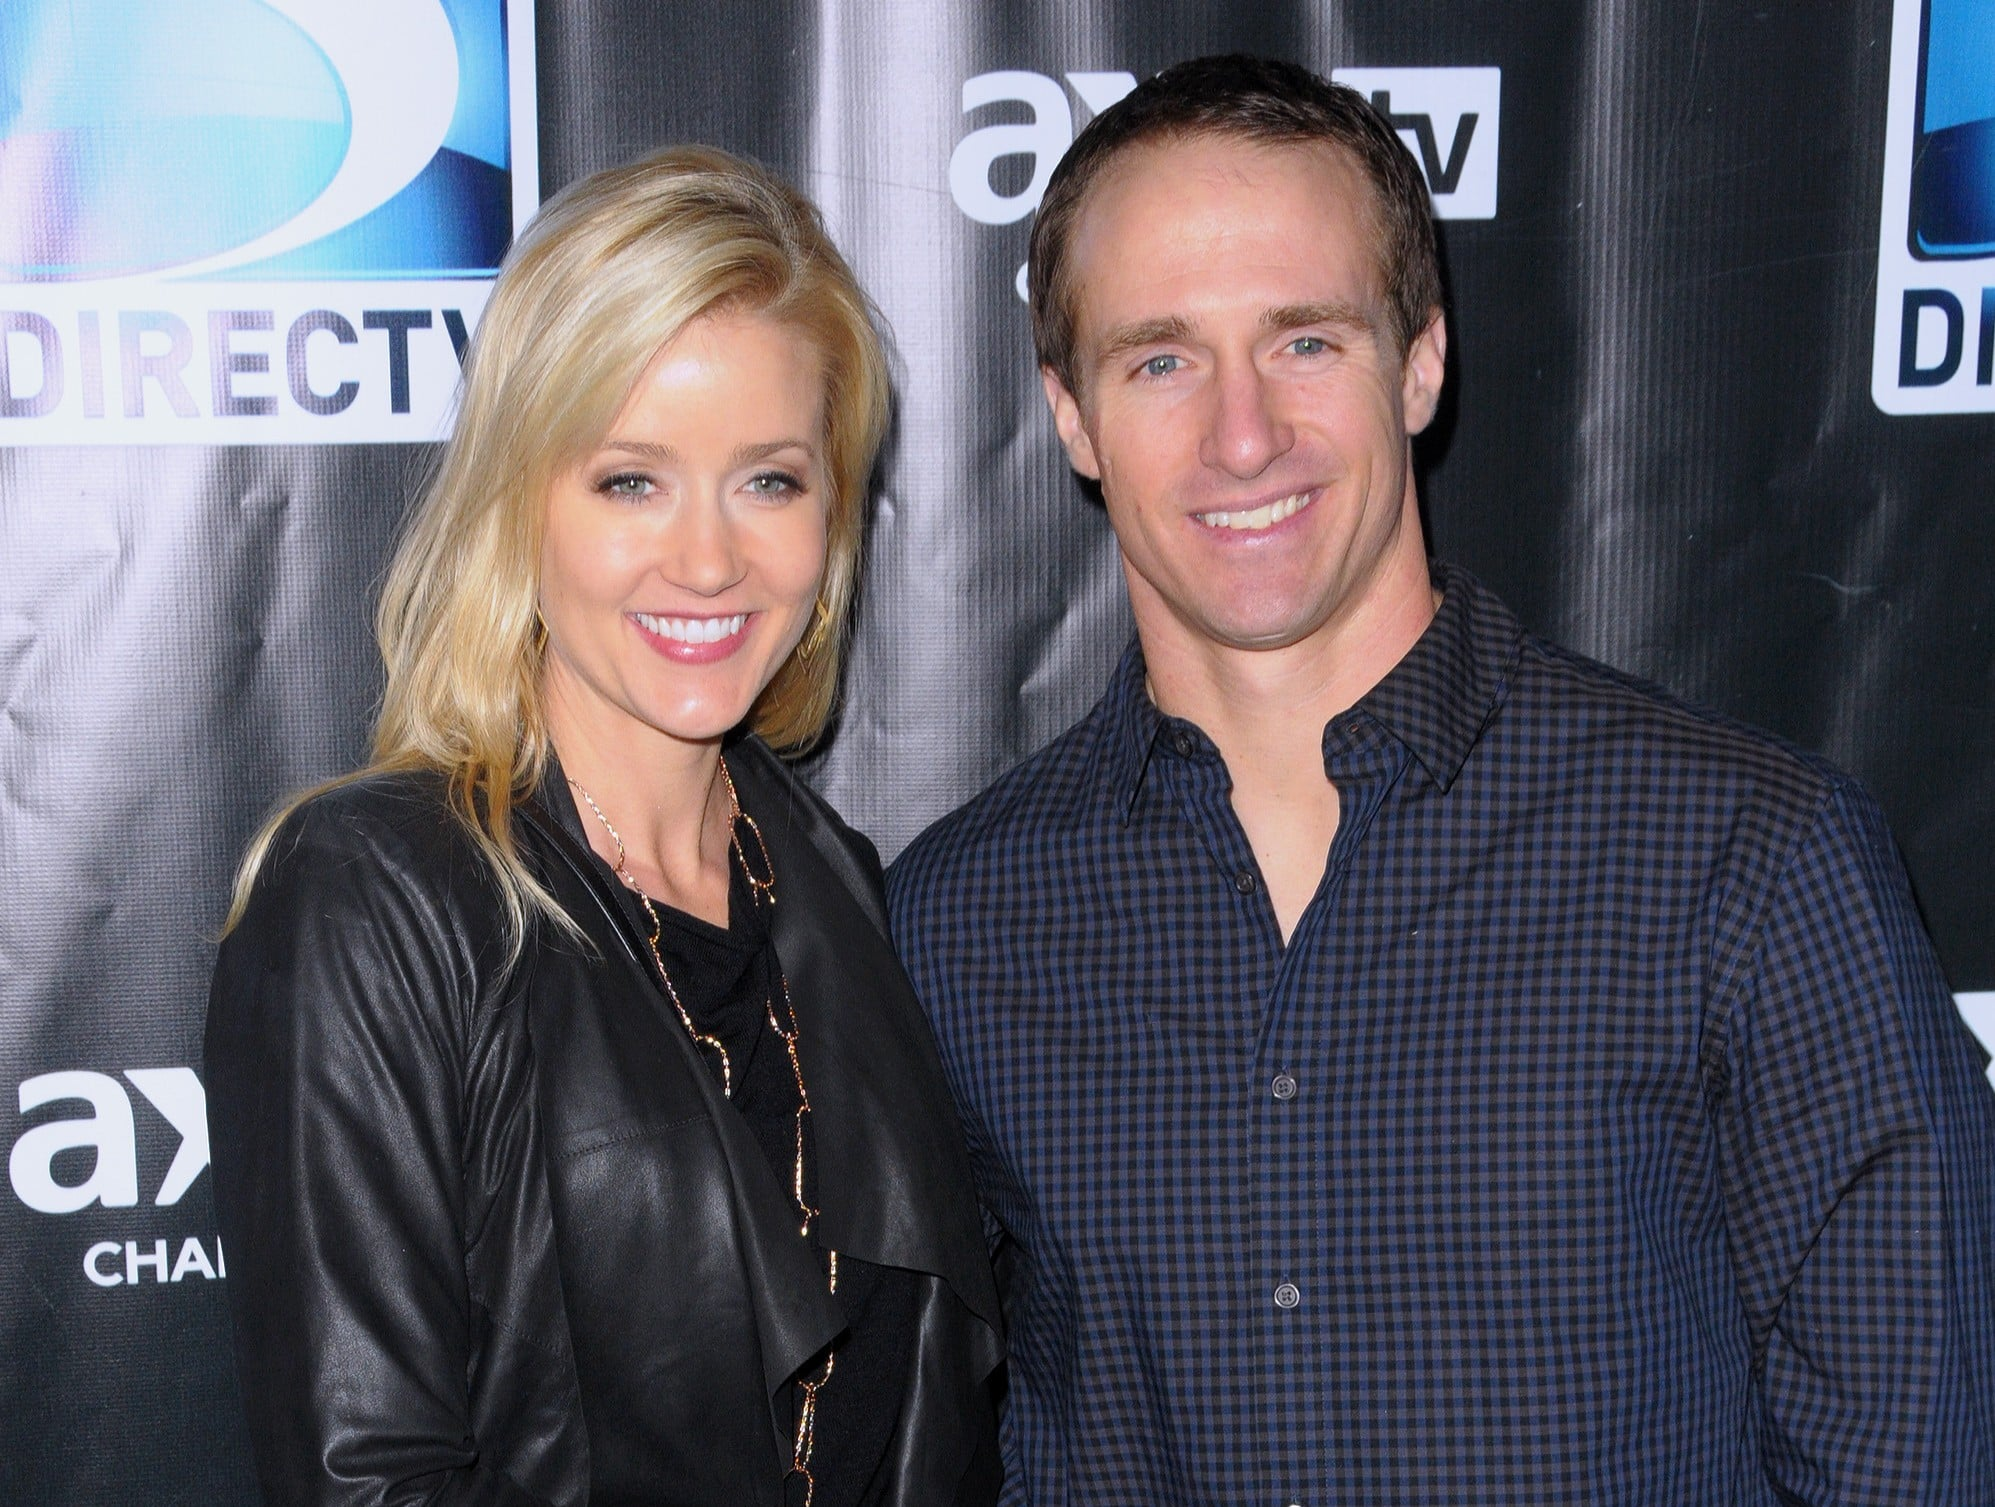 Drew Brees Welcomes Fourth Child Plus More Links